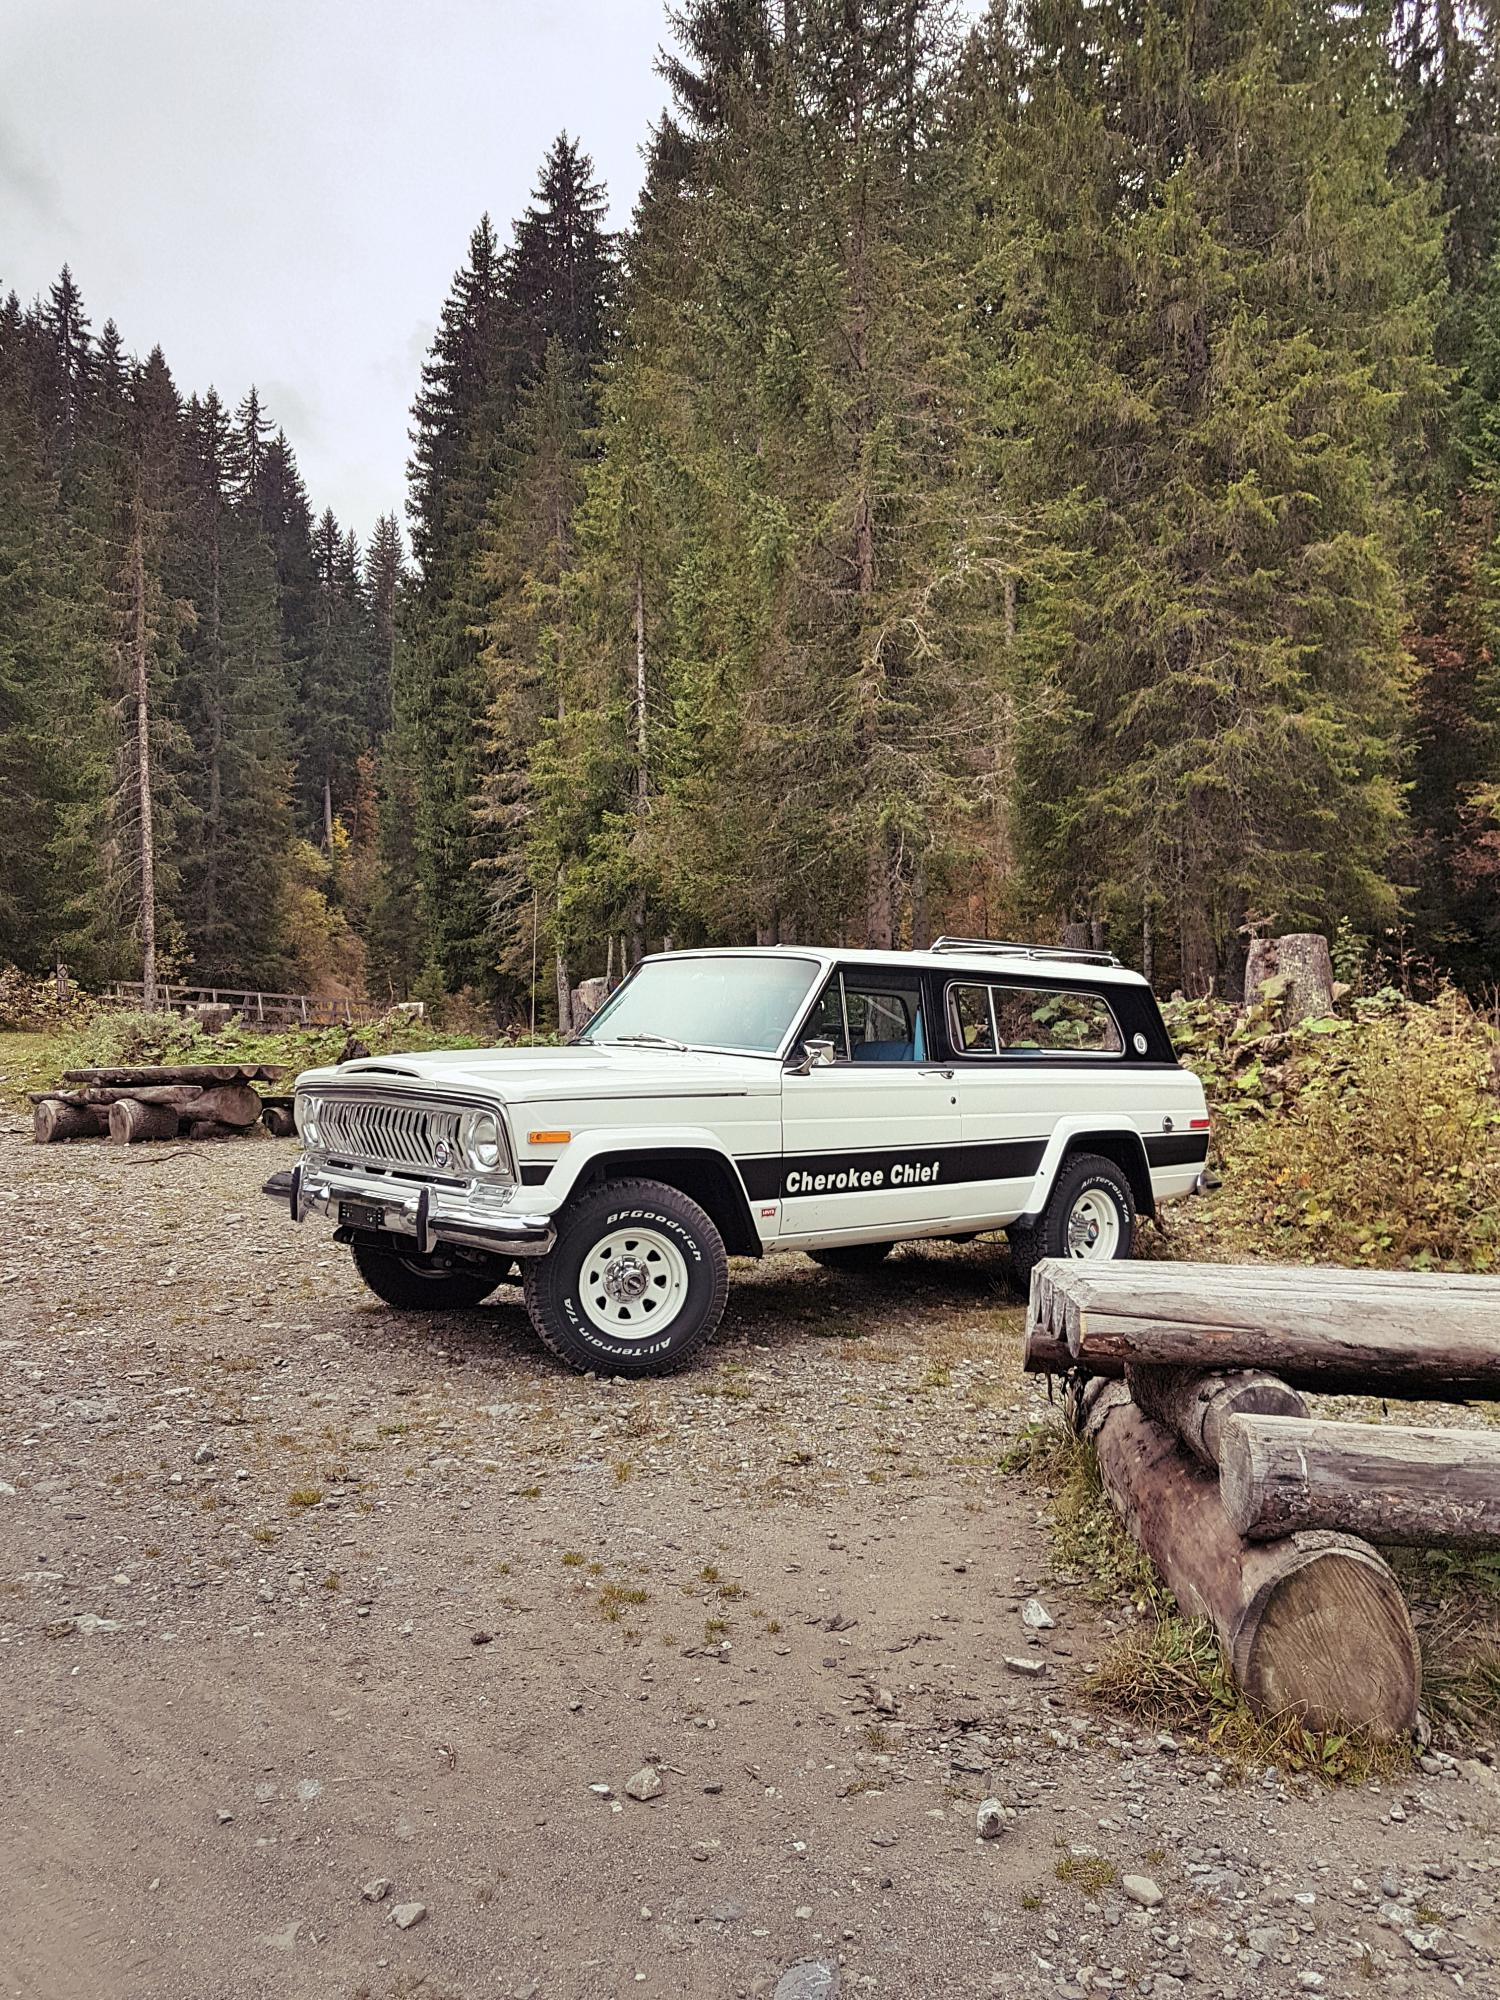 jeep-cherokee-chief-1978-shooting-morgins-switzerland-104.jpg